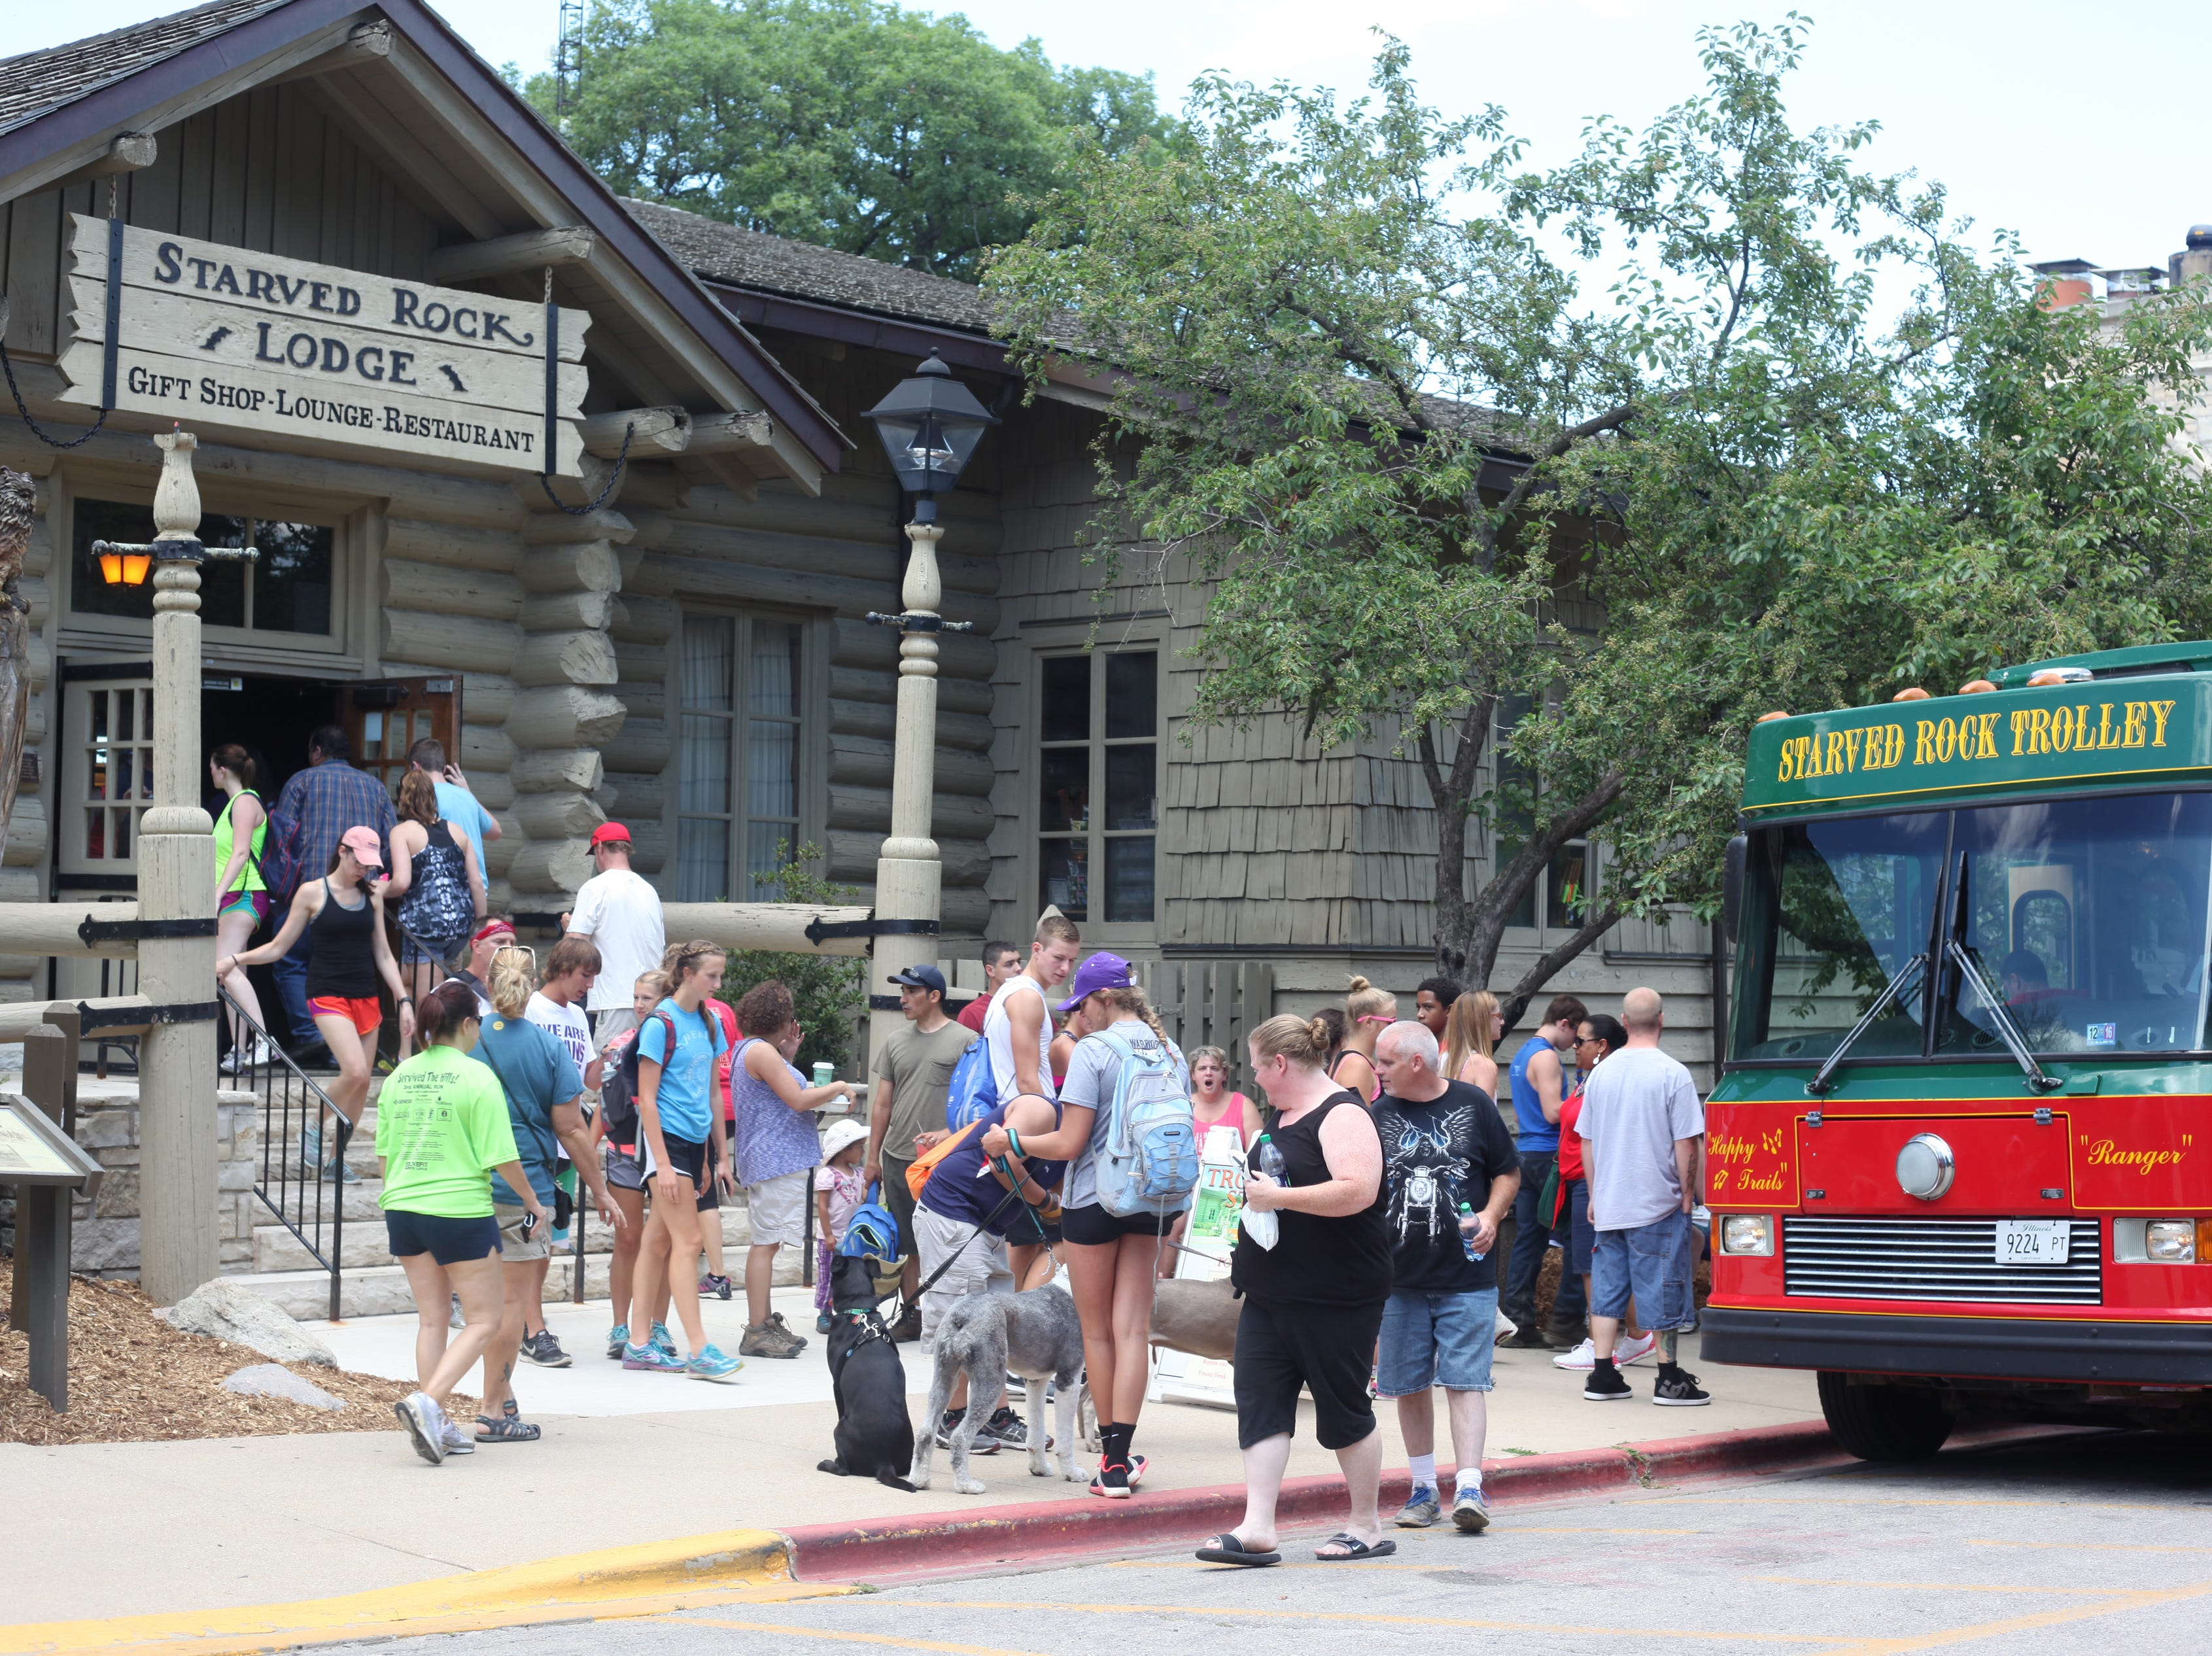 Trolley tours are offered out of the Starved Rock Lodge & Conference Center in Starved Rock State Park outside Utica, Illinois.